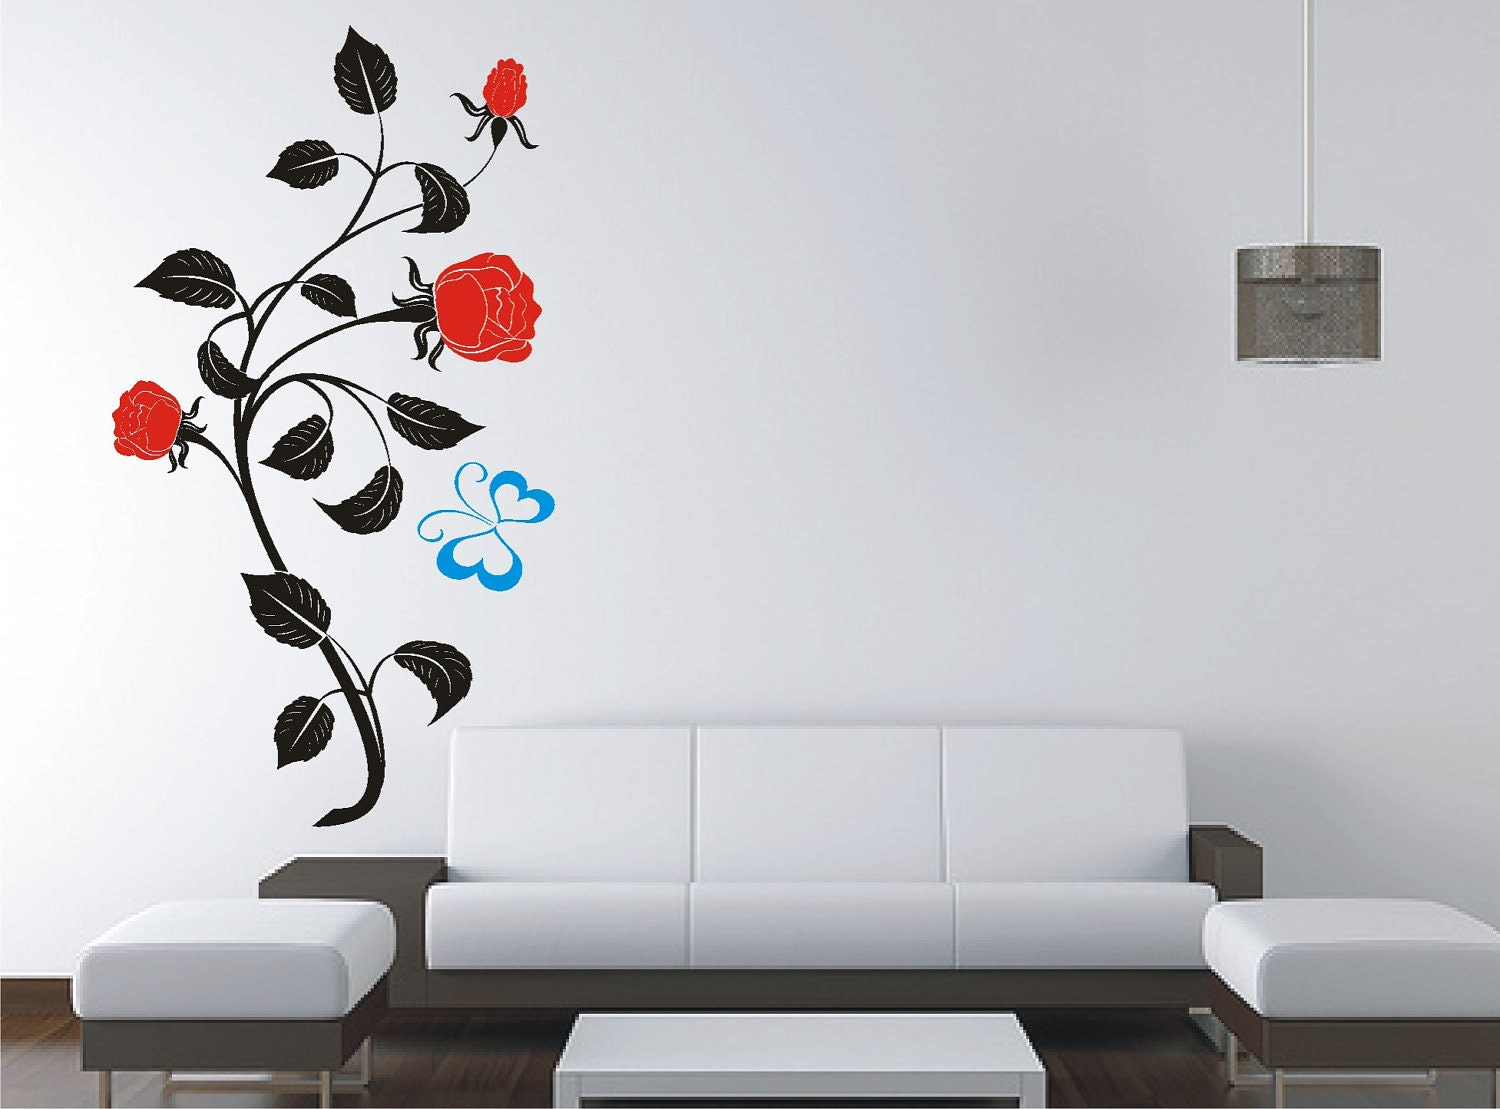 Flower Roses and Butterfly Removable Wall Sticker Vinyl by Tibi291